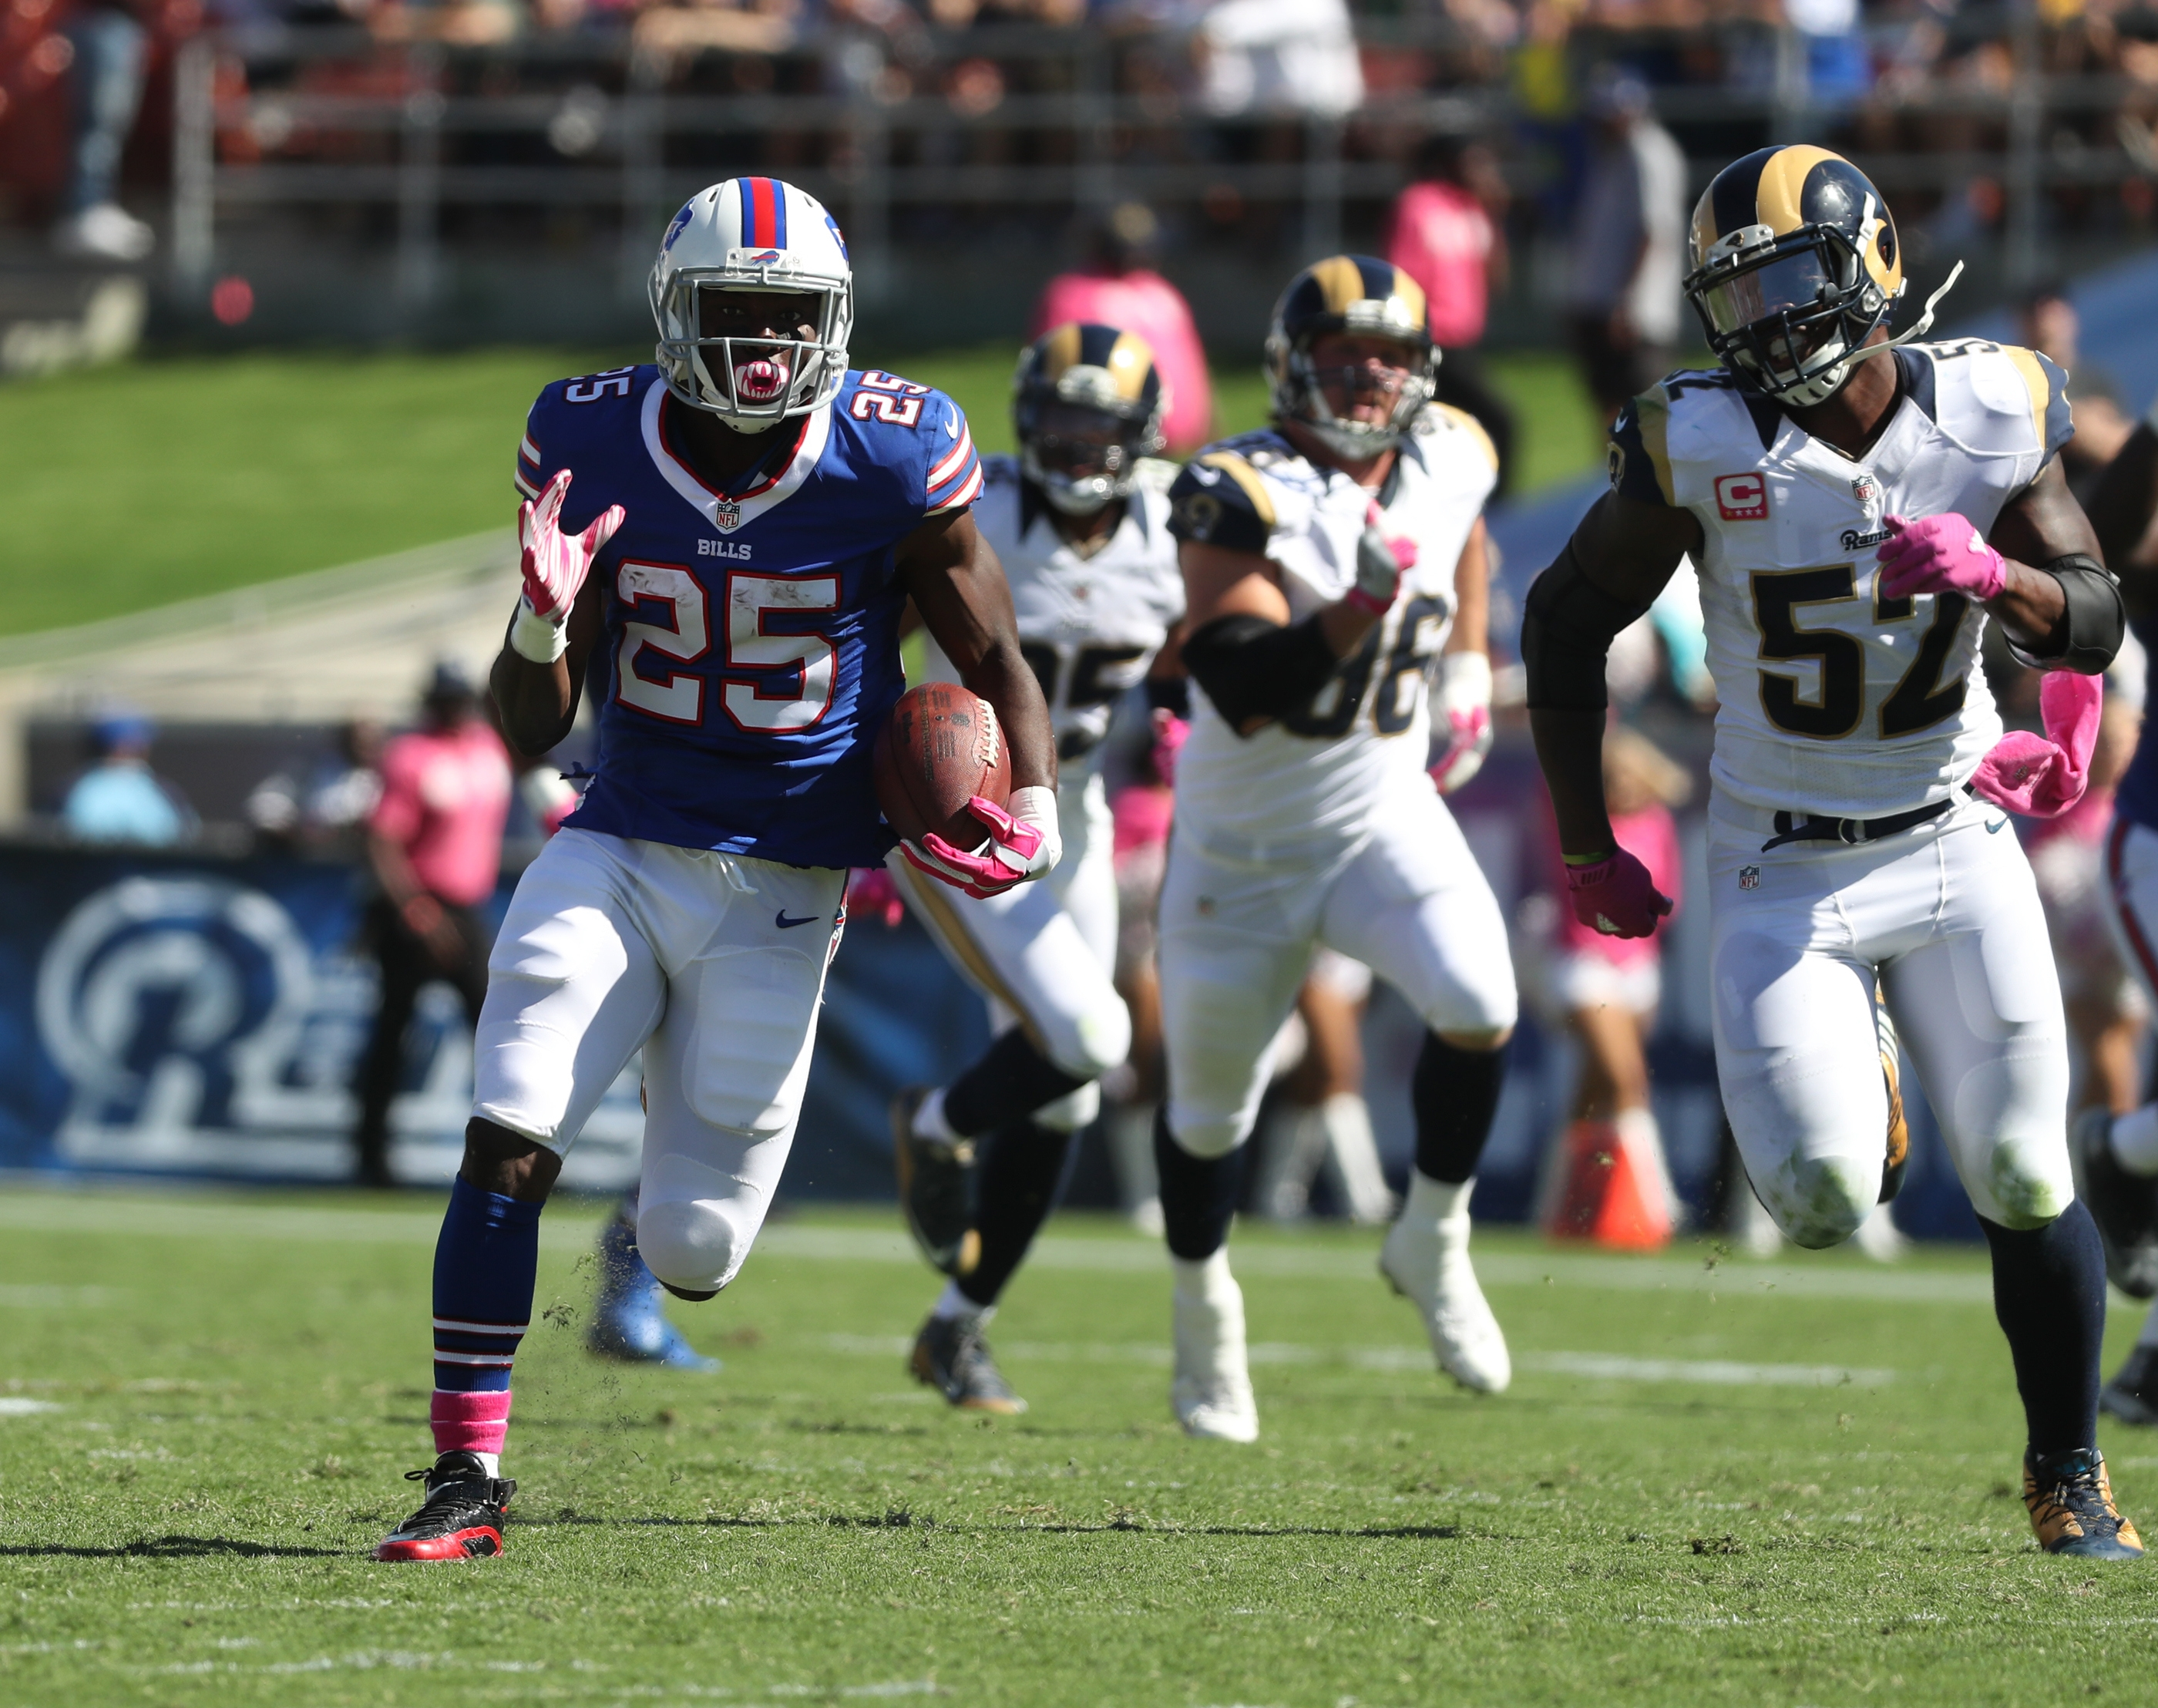 Buffalo Bills running back LeSean McCoy (25) with a long run in the second quarter at Los Angeles Memorial Coliseum on Sunday, Oct. 9, 2016.  (James P. McCoy/Buffalo News)